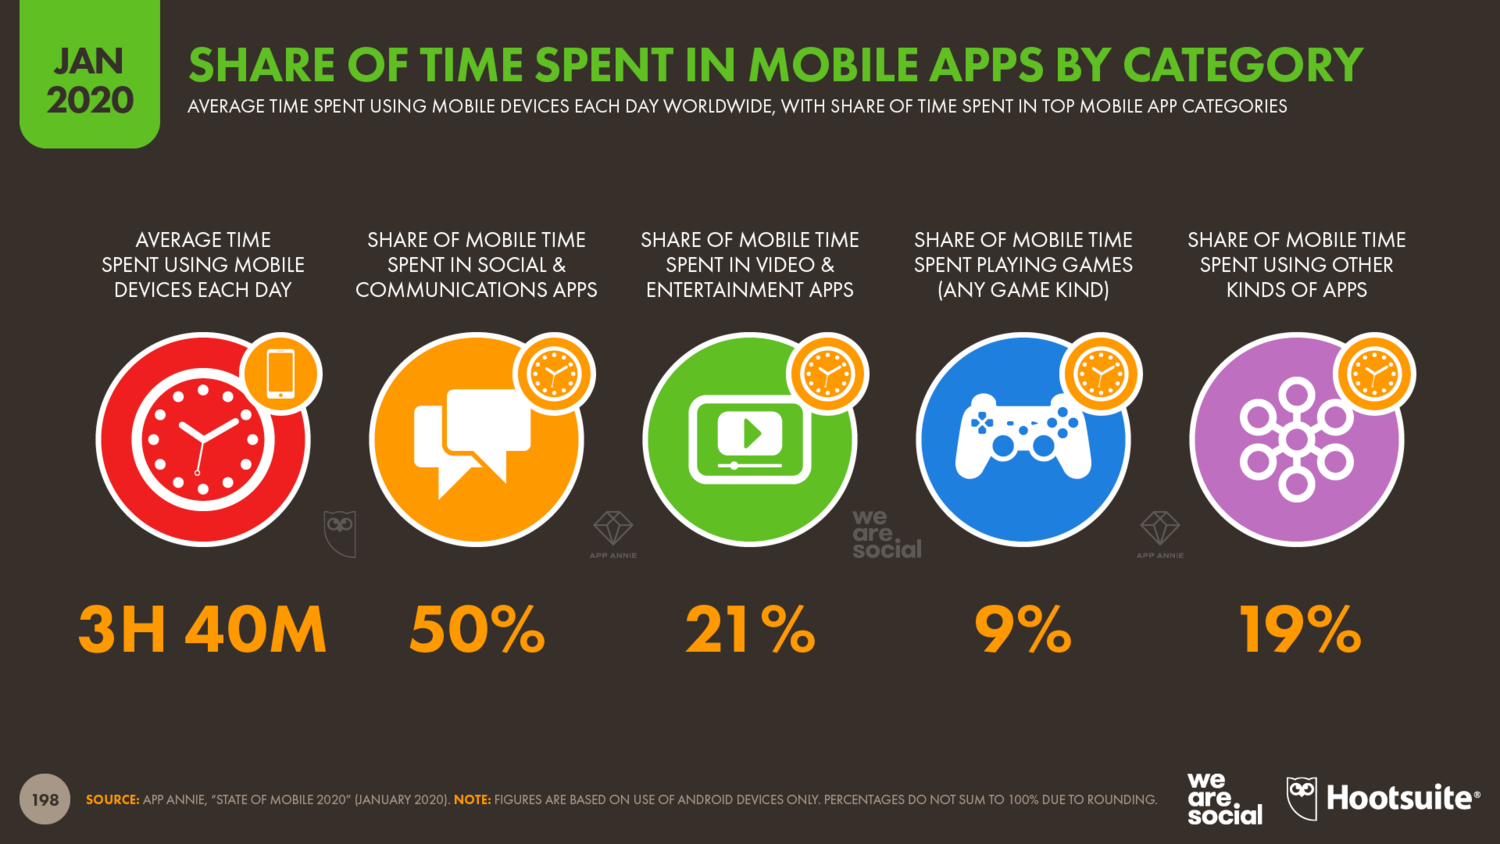 Share+of+Mobile+Time+Spent+by+Mobile+App+Category+January+2020+DataReportal